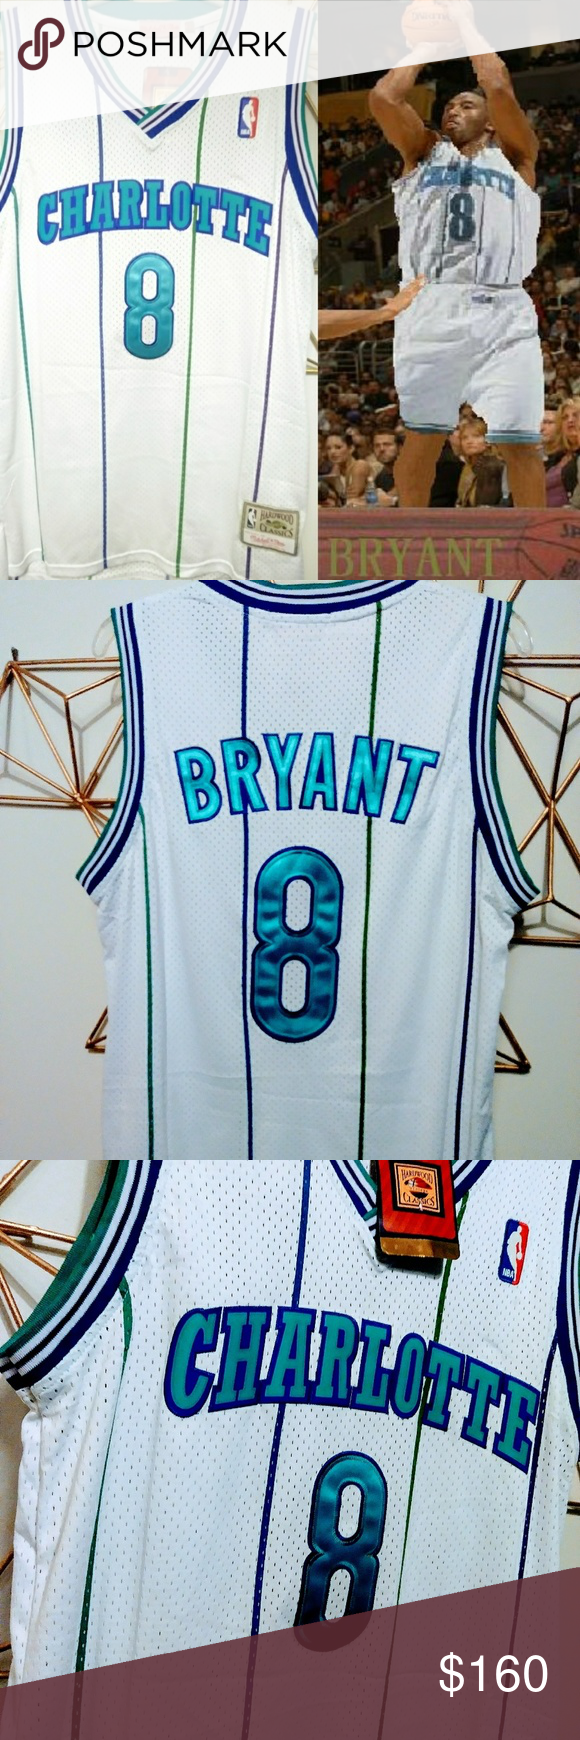 1996 Draft Kobe Bryant Charlotte Hornets Jersey Size  Medium For those that  don t ff0a3abd4